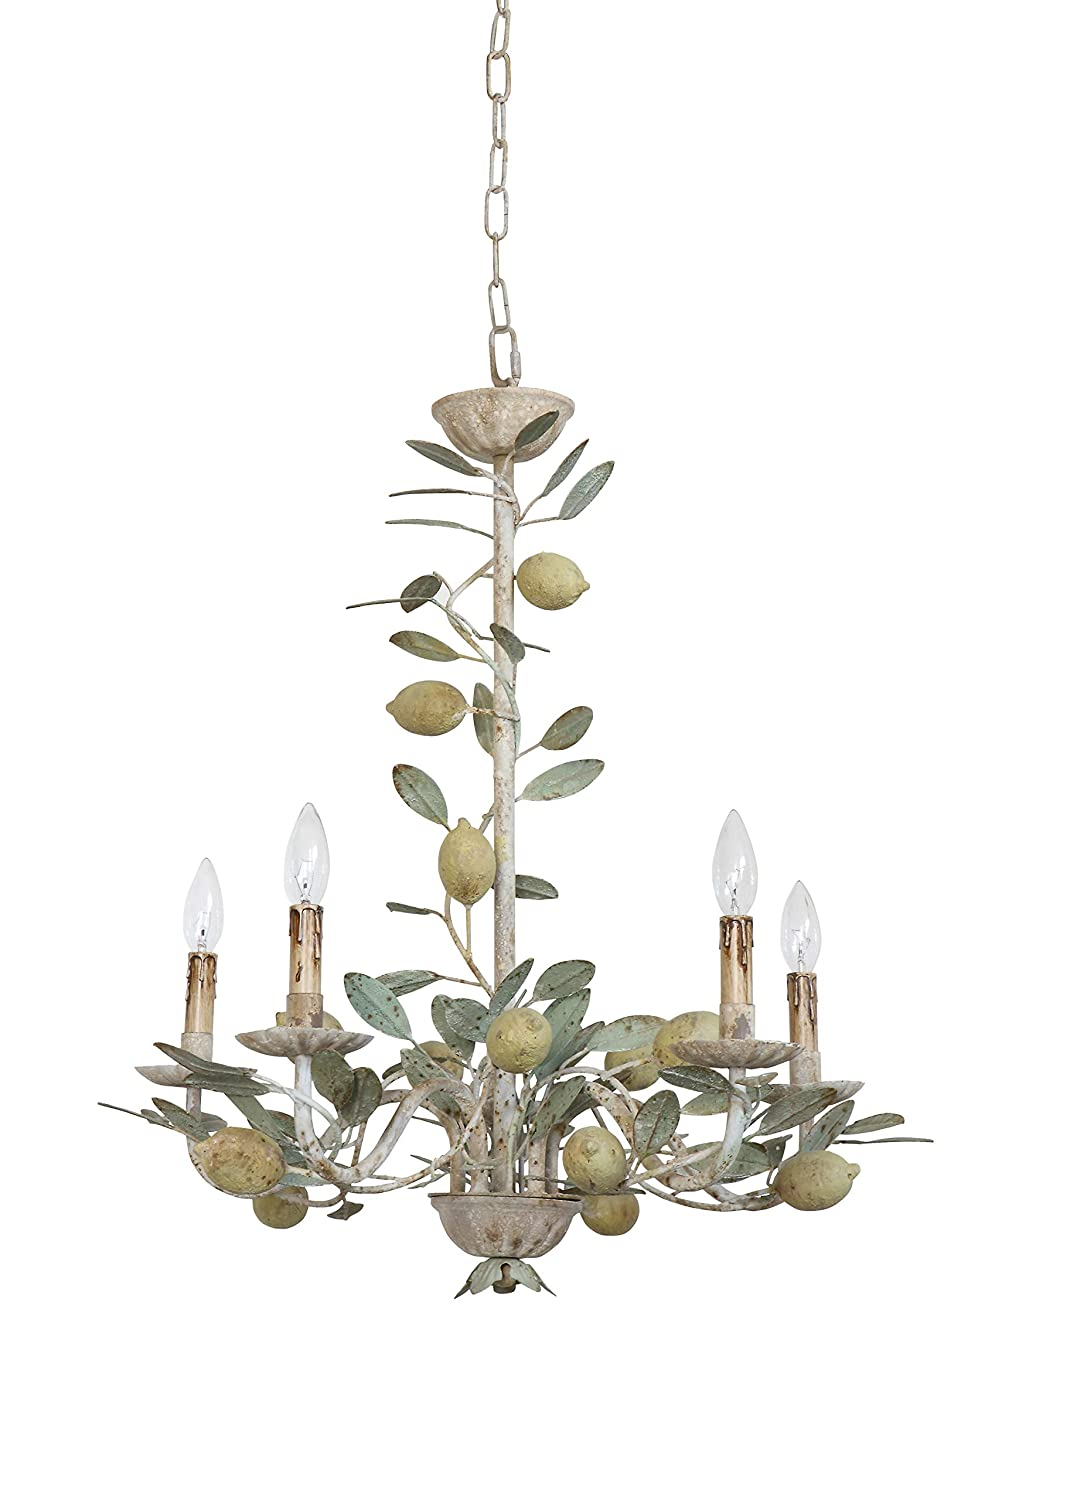 Distressed metal chandelier with lemons for French farmhouse and European country style spaces.